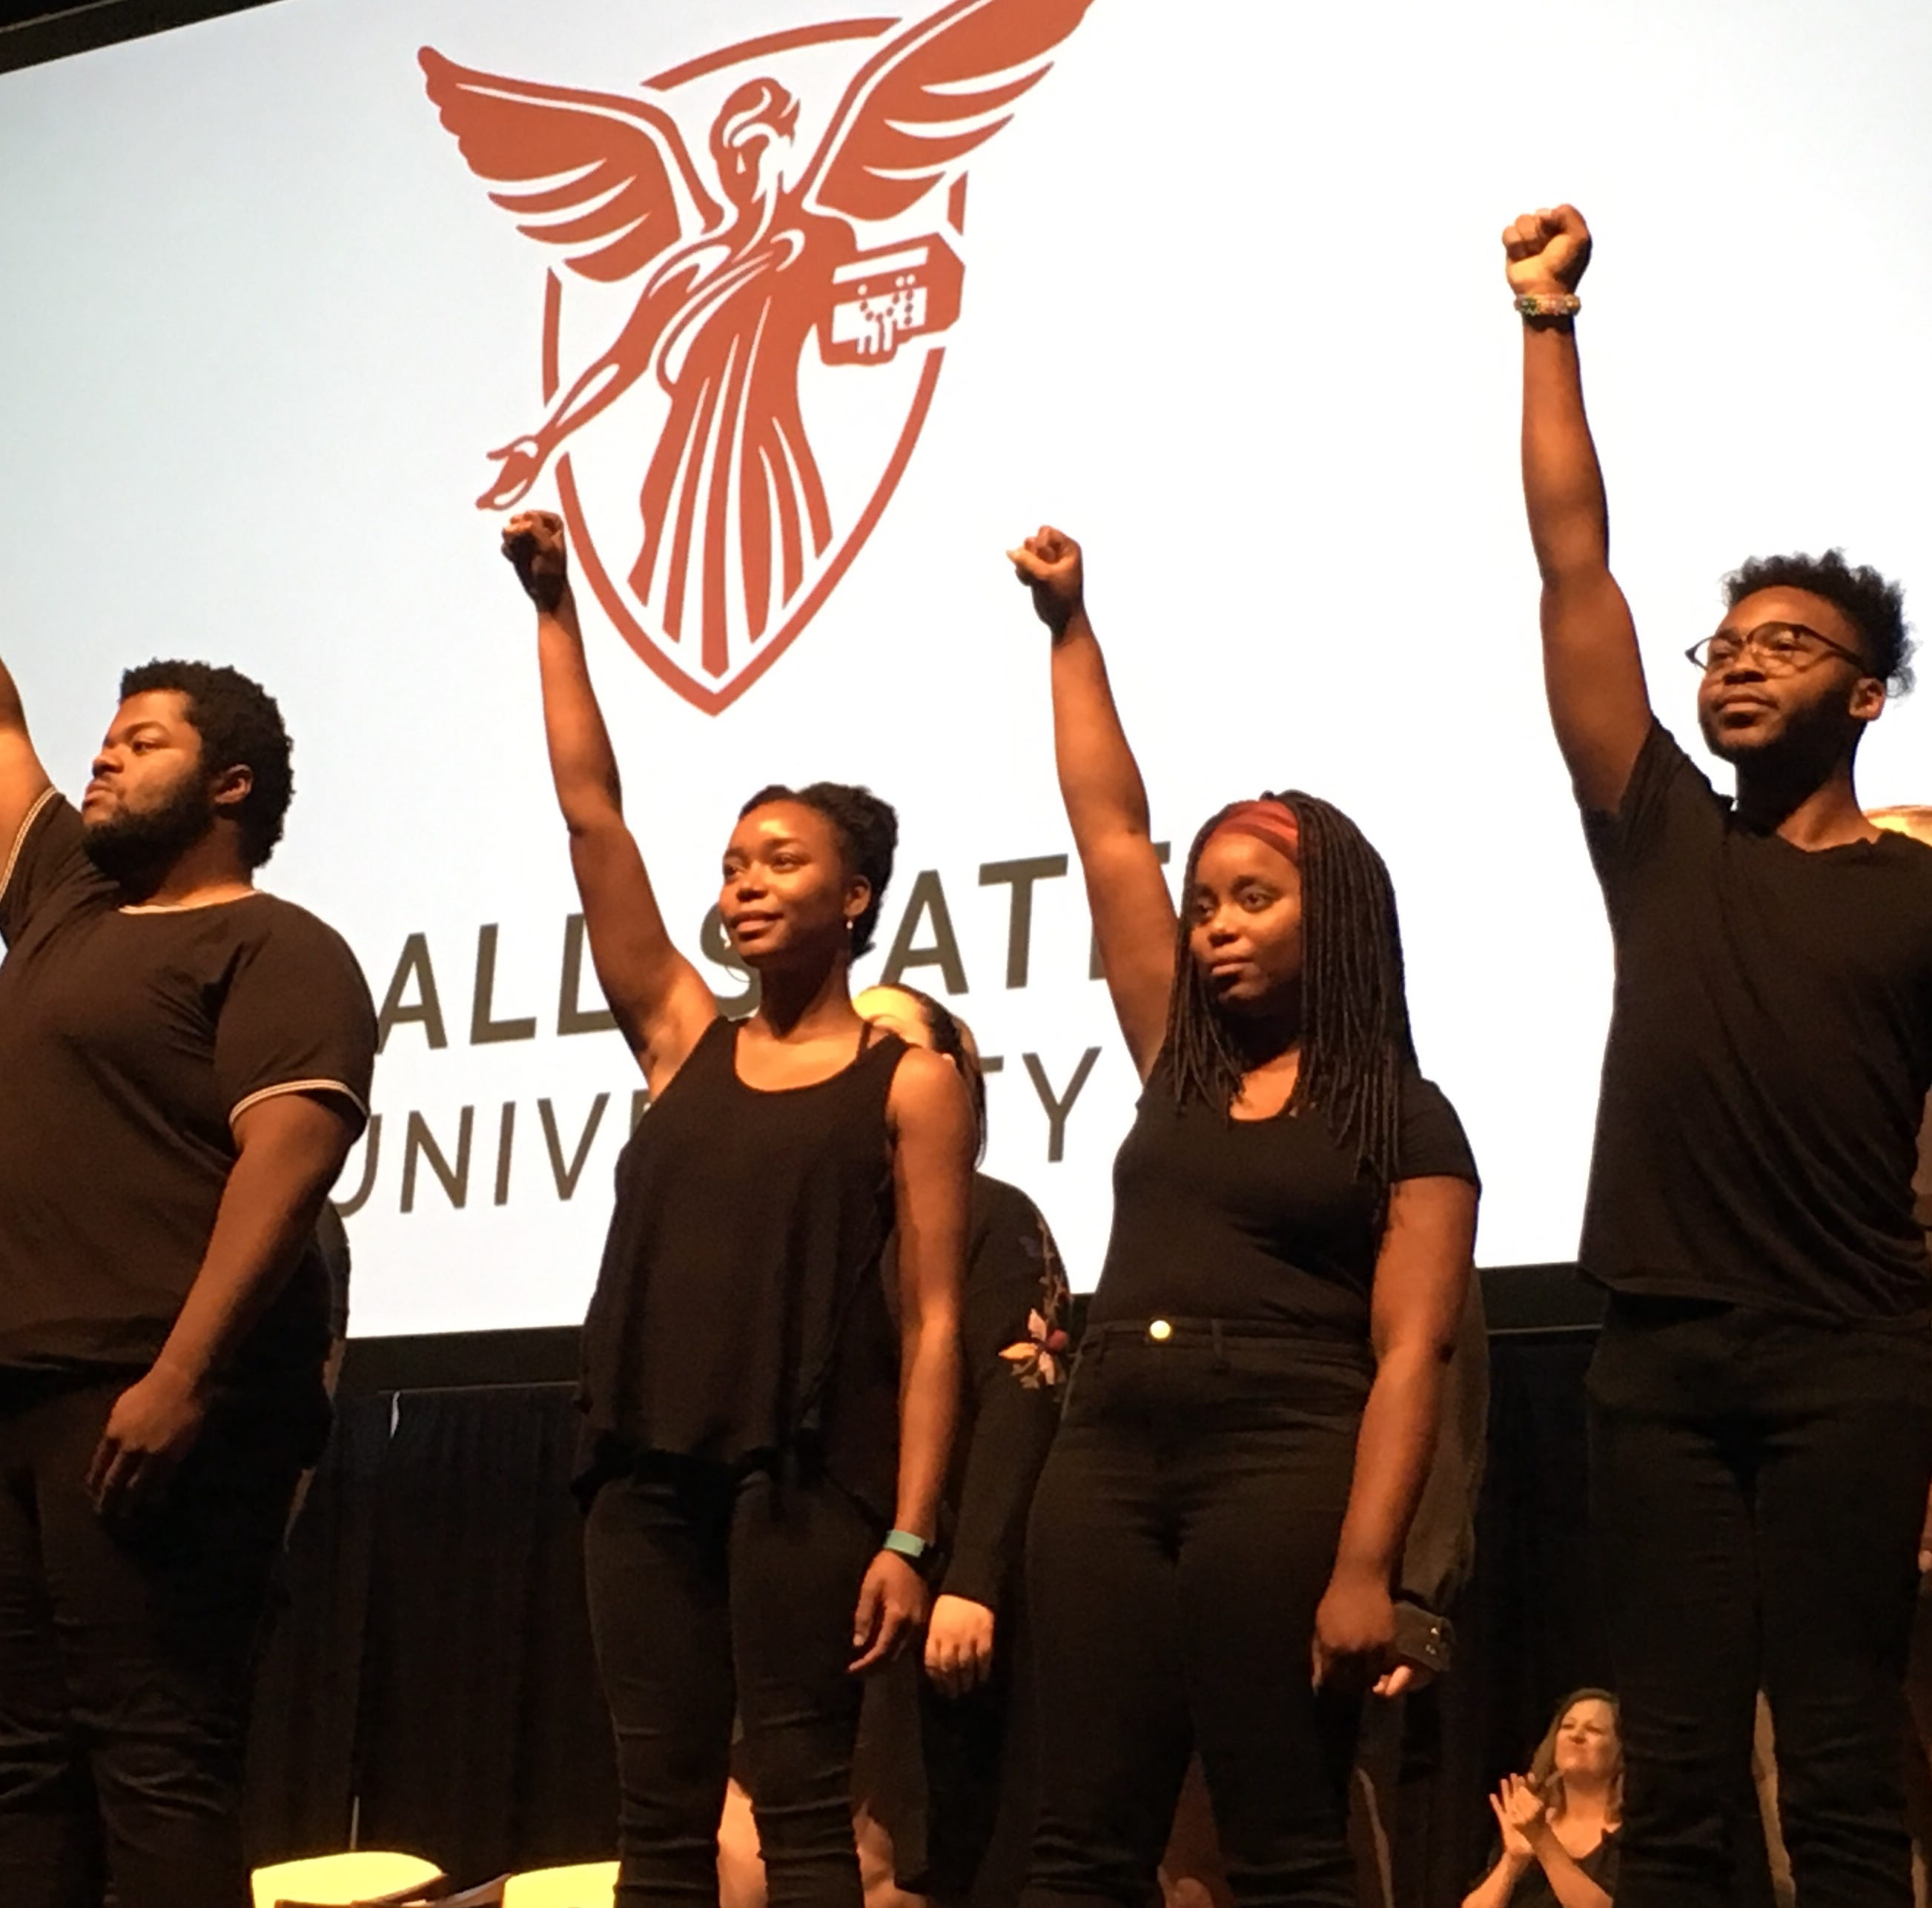 Messages of diversity dominate Fall Convocation at BSU